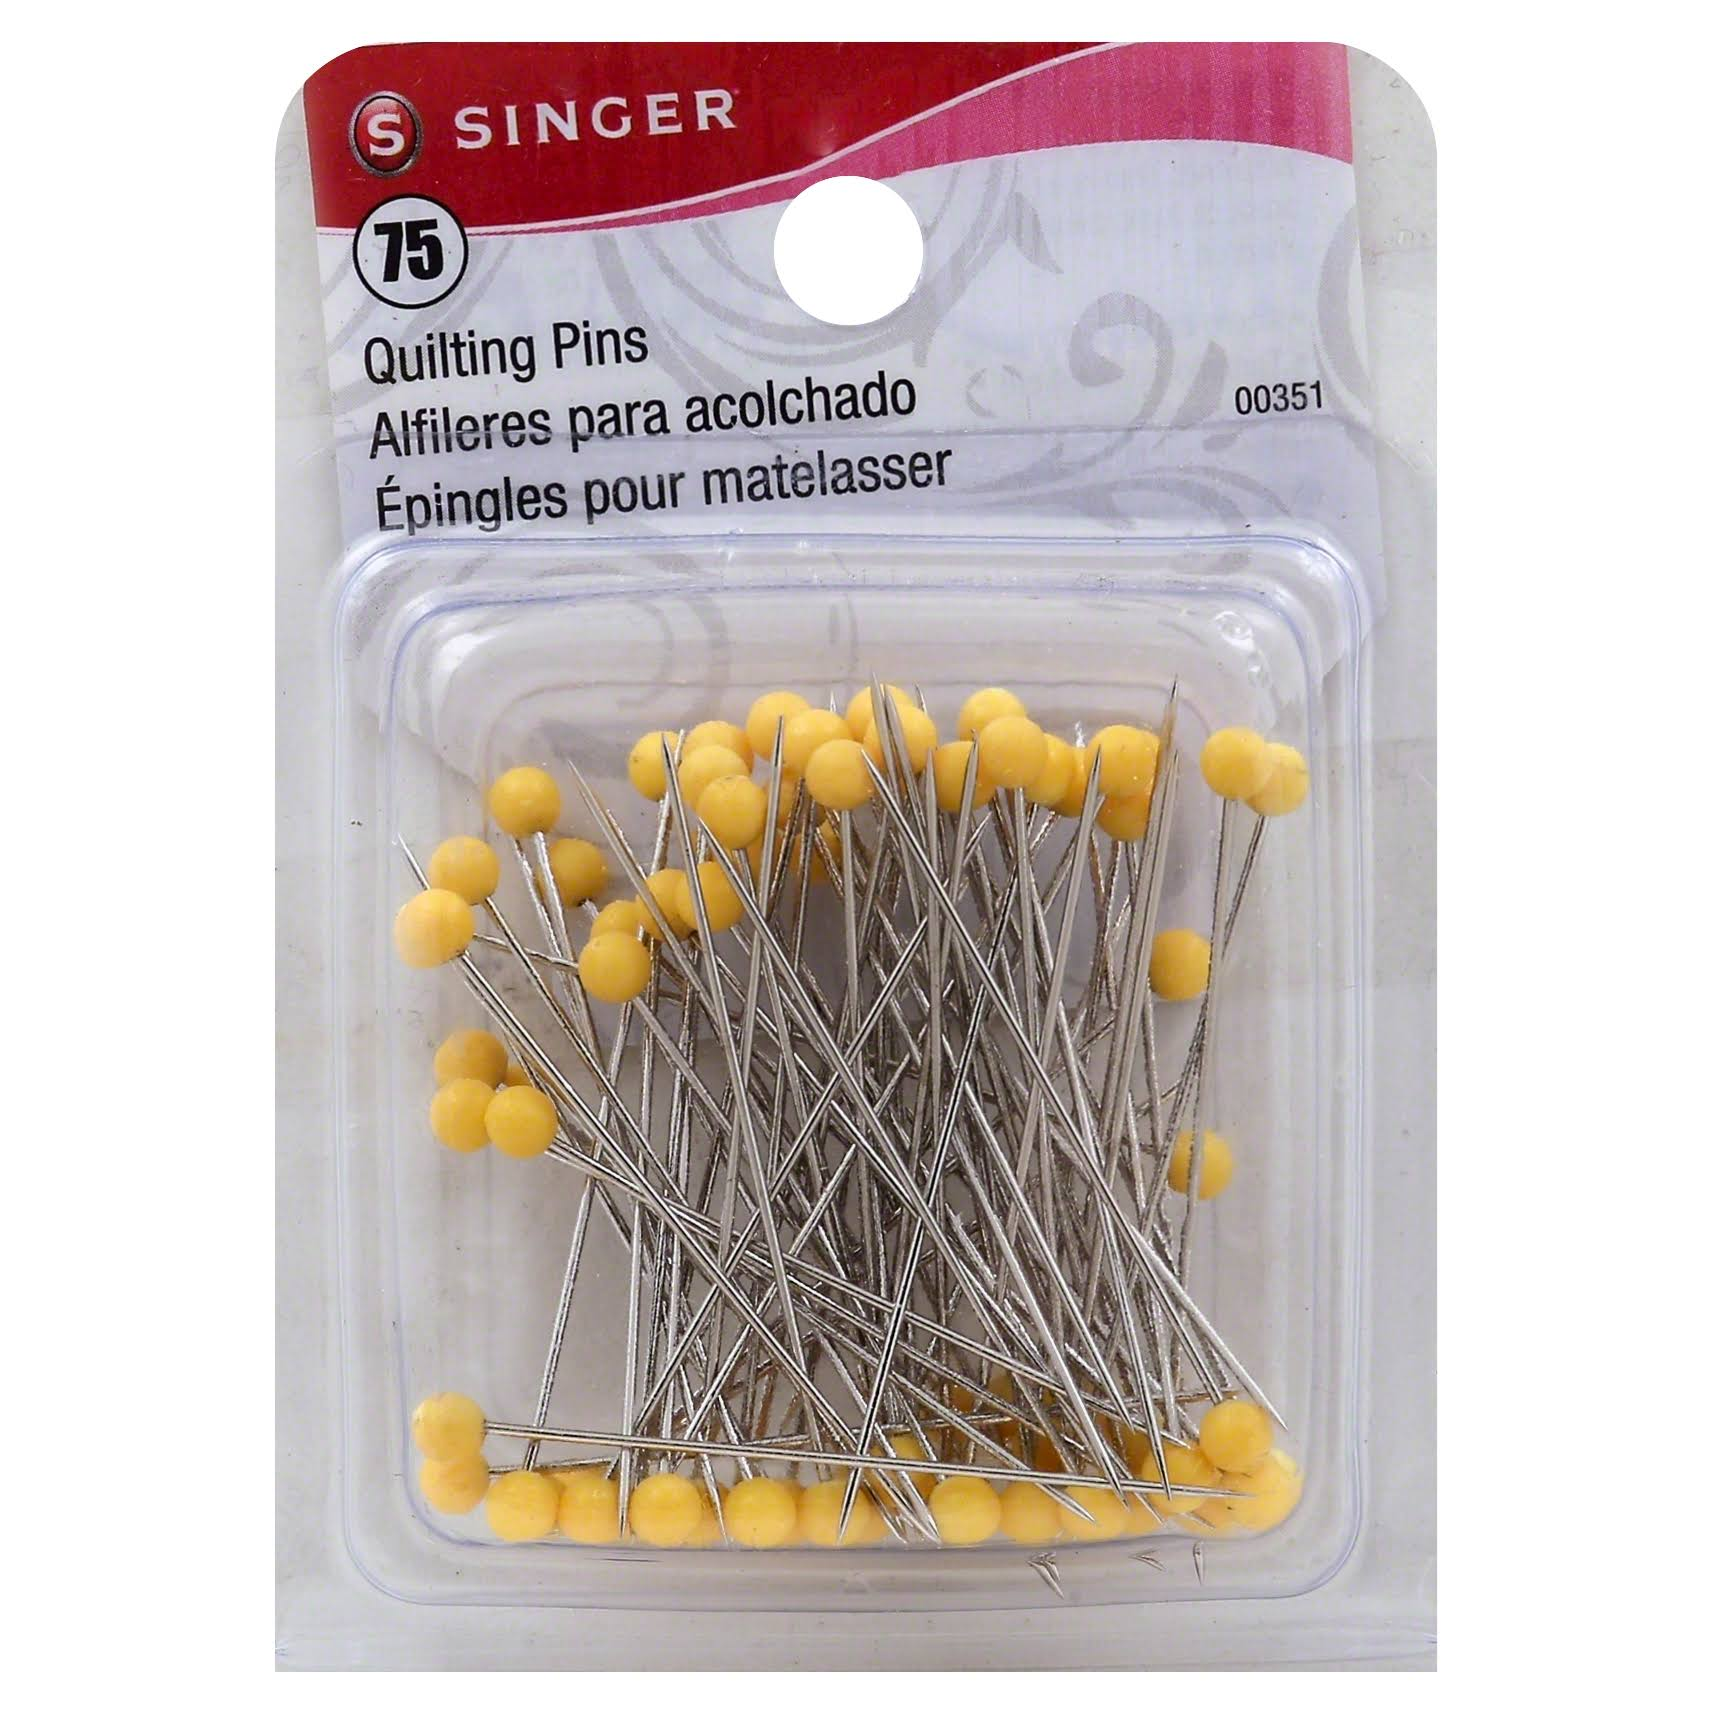 Singer Quilting Pins - Yellow Ball Tip, Size 28, 75pk